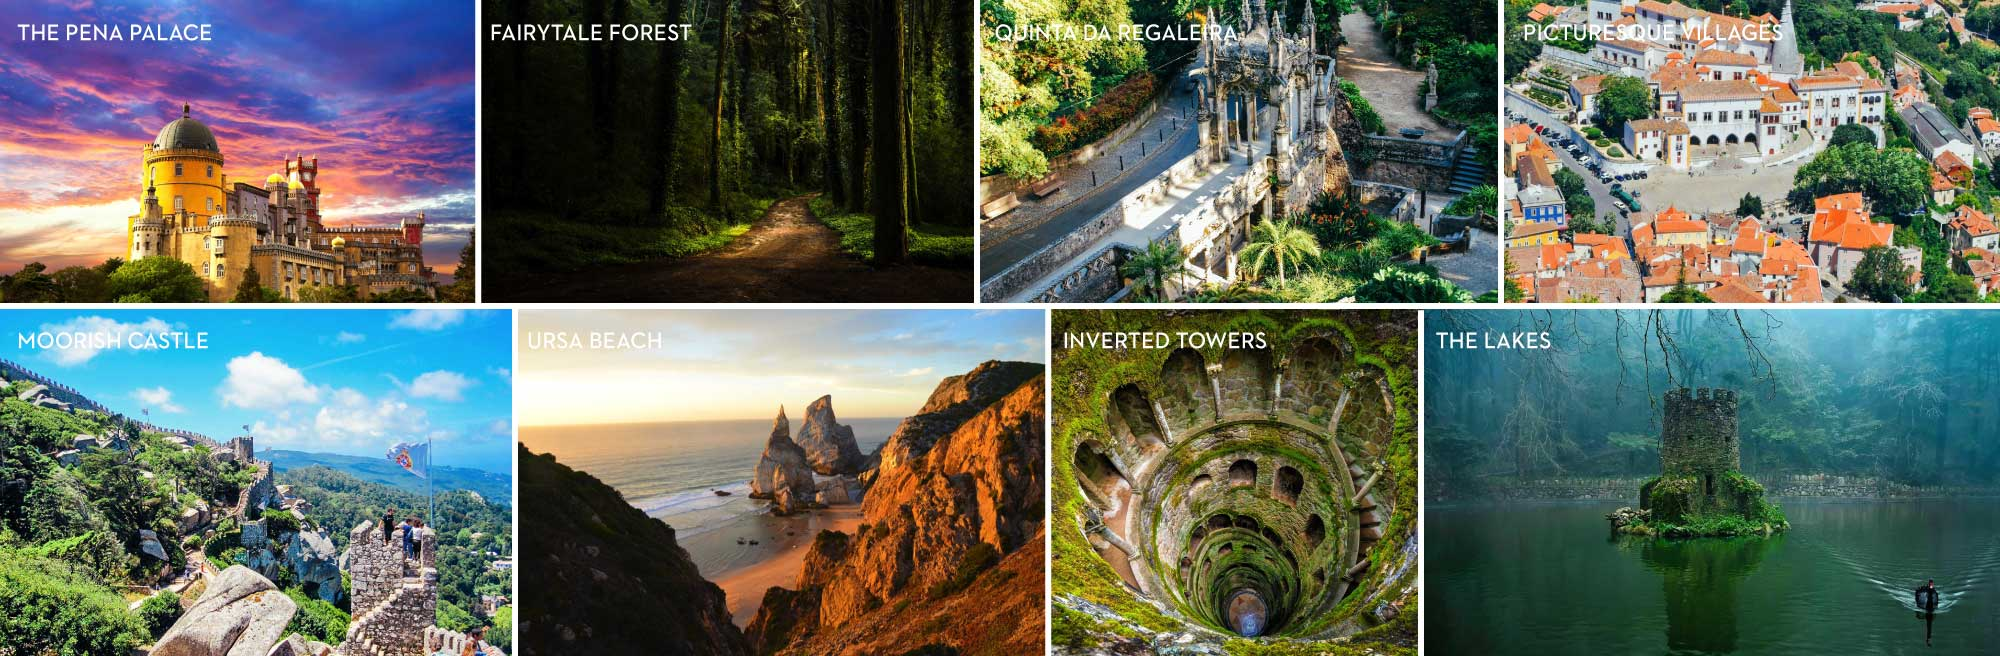 8 Reasons to visit sintra